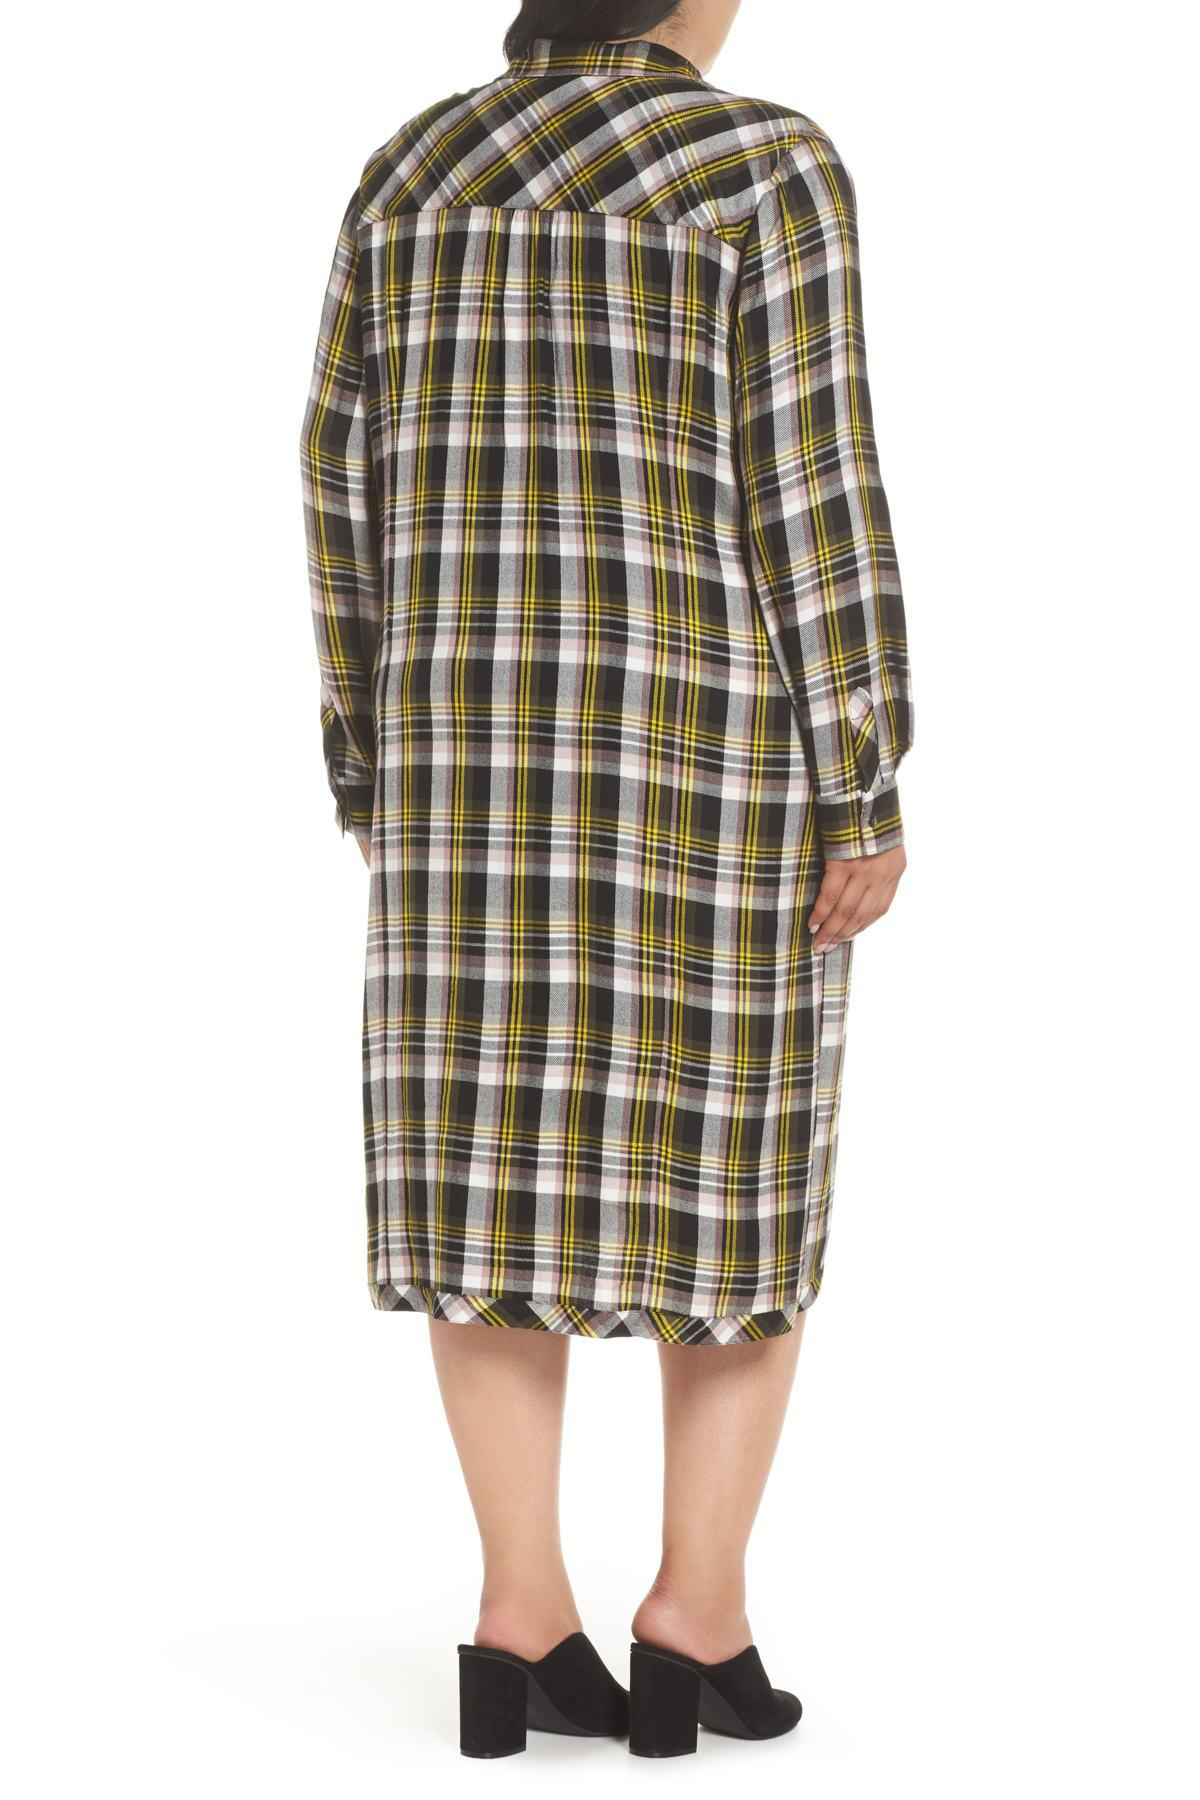 f476f613279 Lyst - Caslon Knot Front Plaid Shirtdress (plus Size) in Black ...